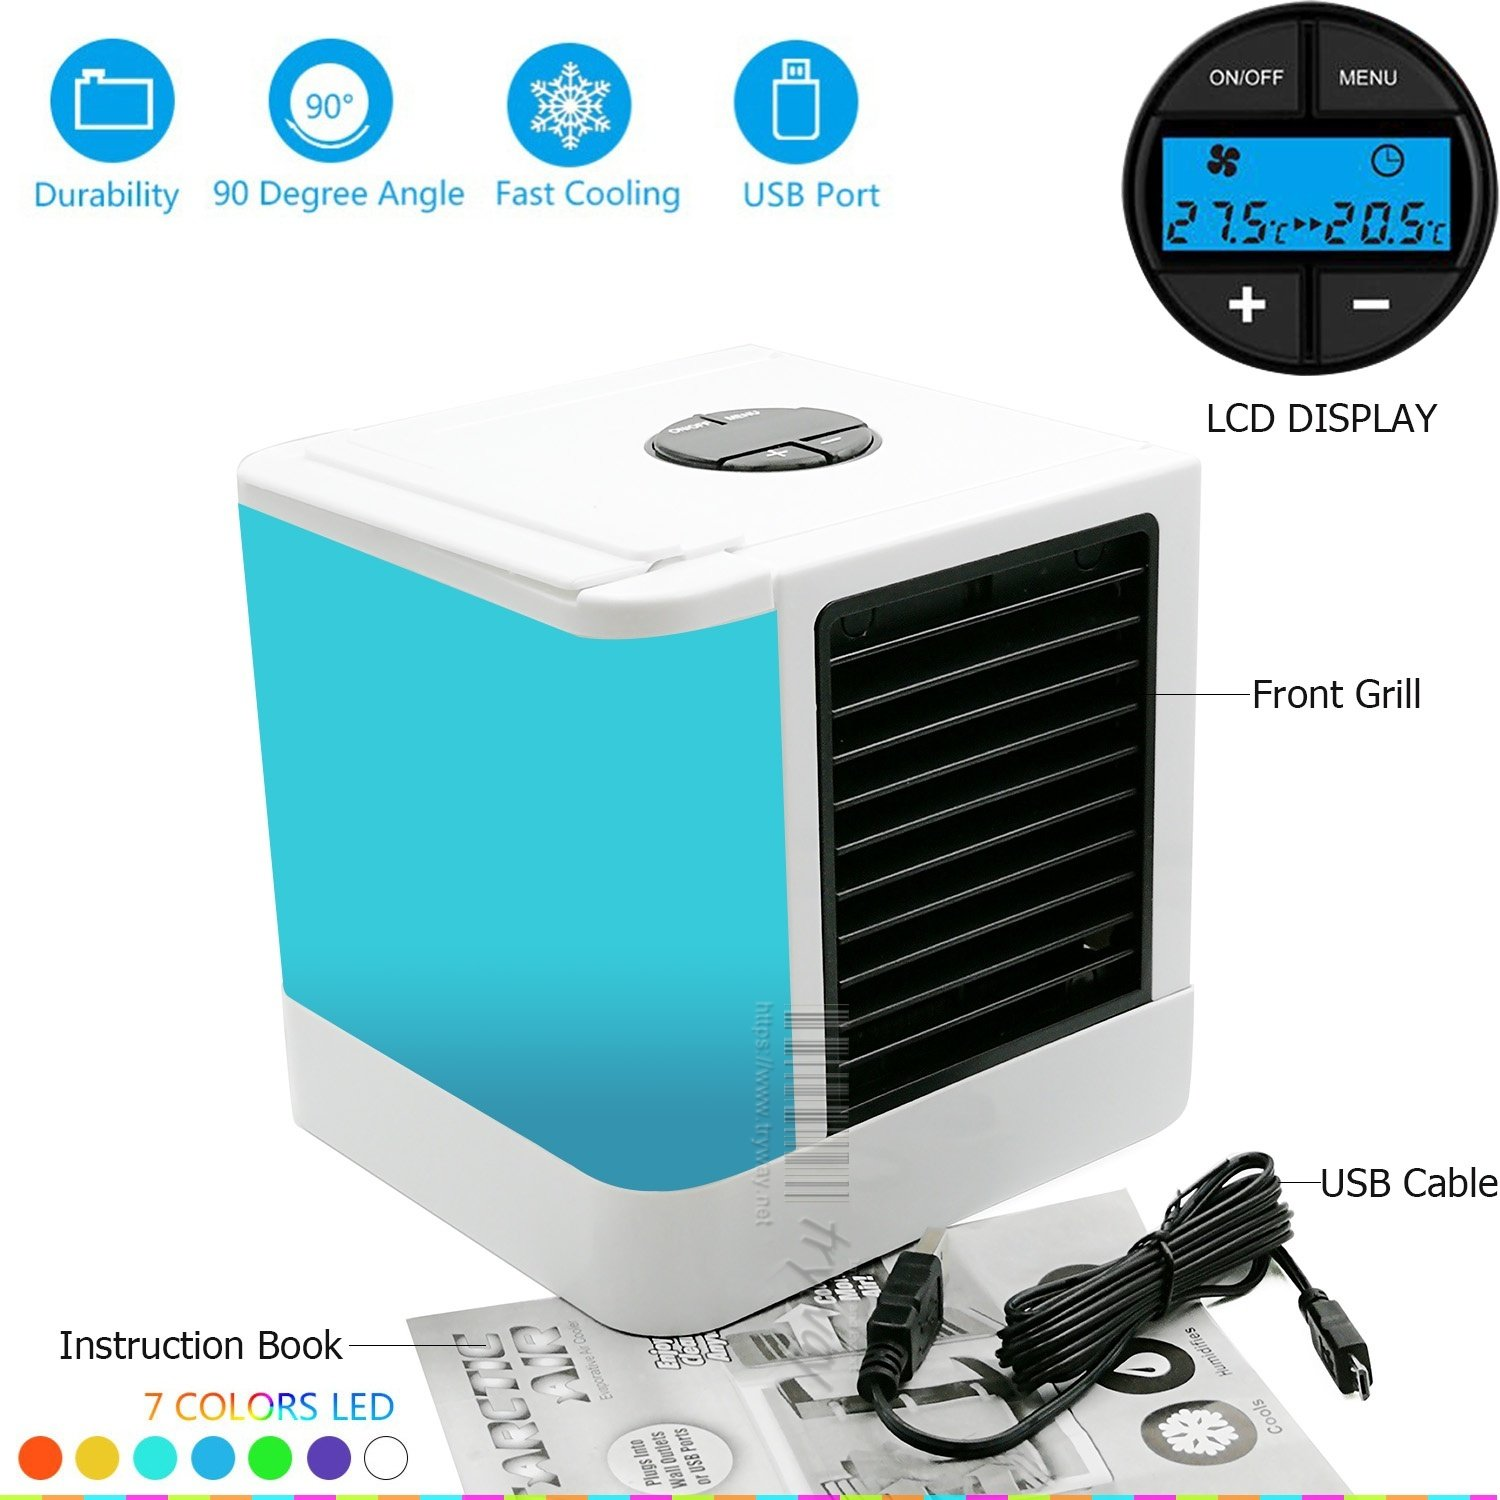 Trymway Personal Space Air Cooler 5-in-1 Study Sleep Arctic air Mini Cooler Quick&Easy Way to Cool Any Space Mini fan Air Cooler Humidifier&Purifier 7 Color Adjustable LED Lights 5 speeds Home Office Desk Device Portable Air Conditioner LCD Displa